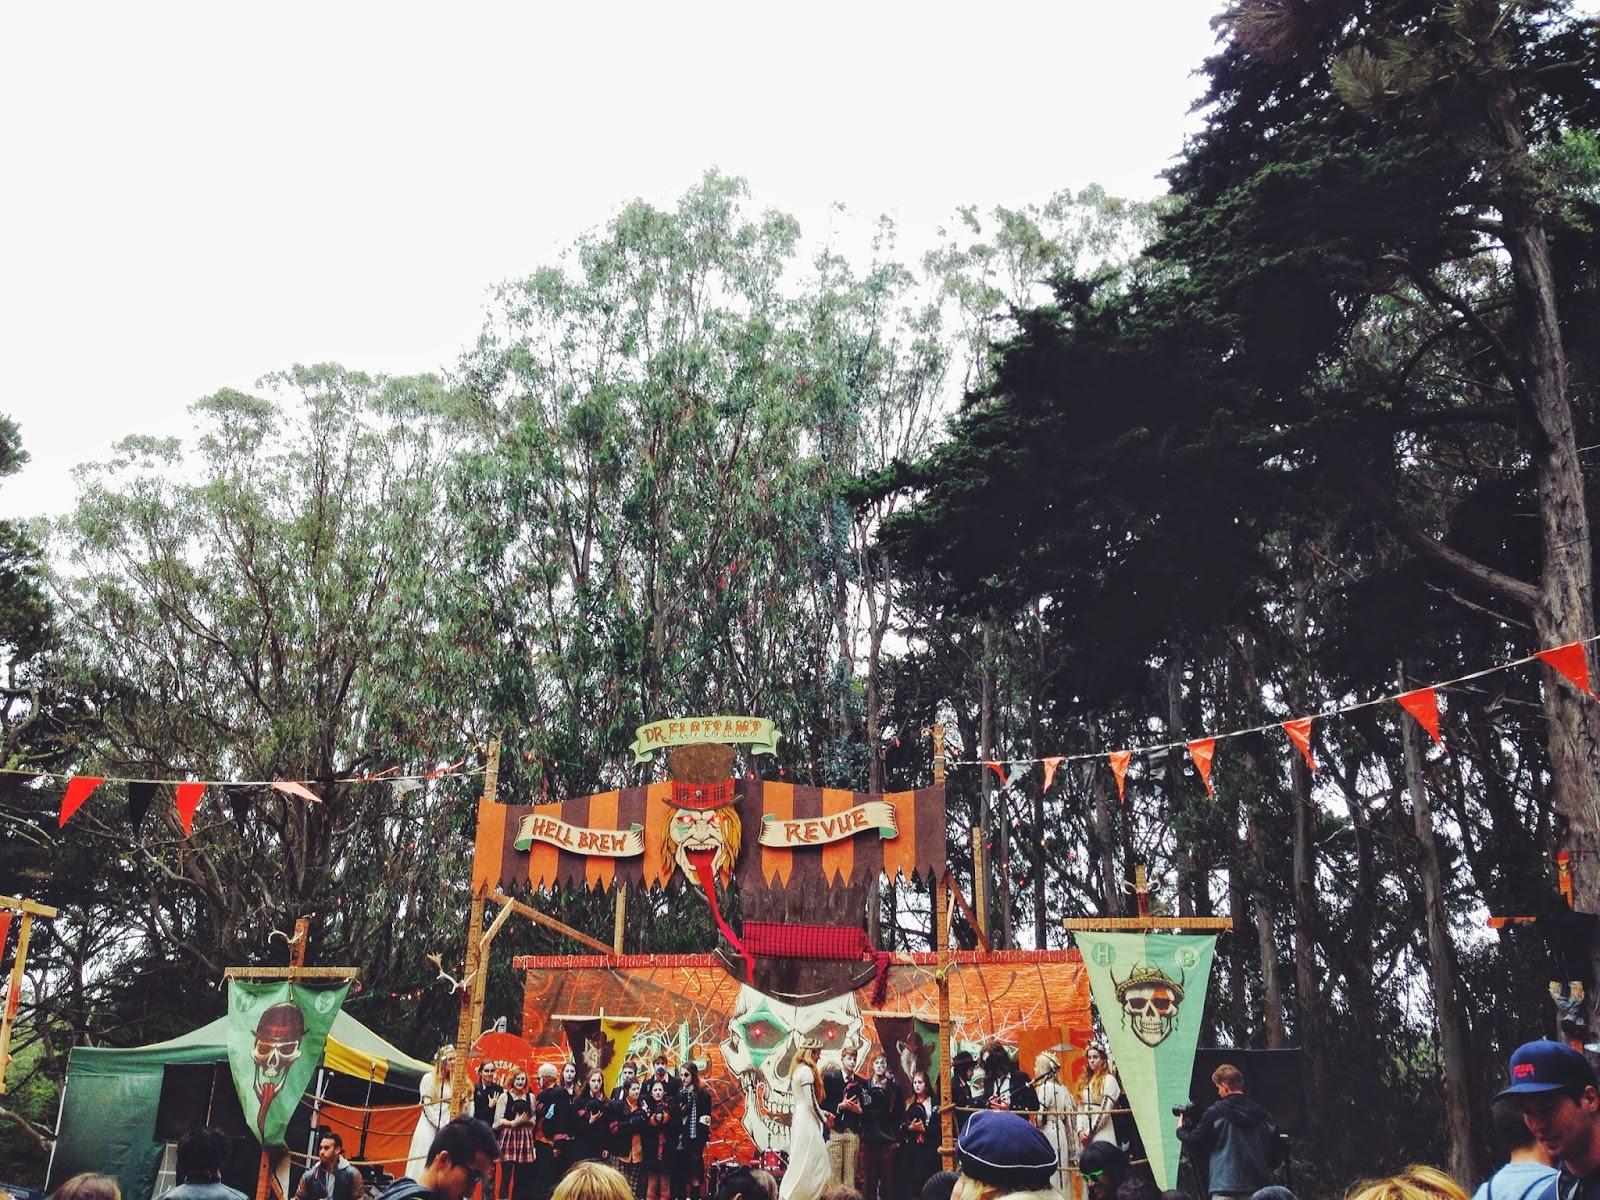 Dr. Flostam's Hell Brew Outside Lands 2014